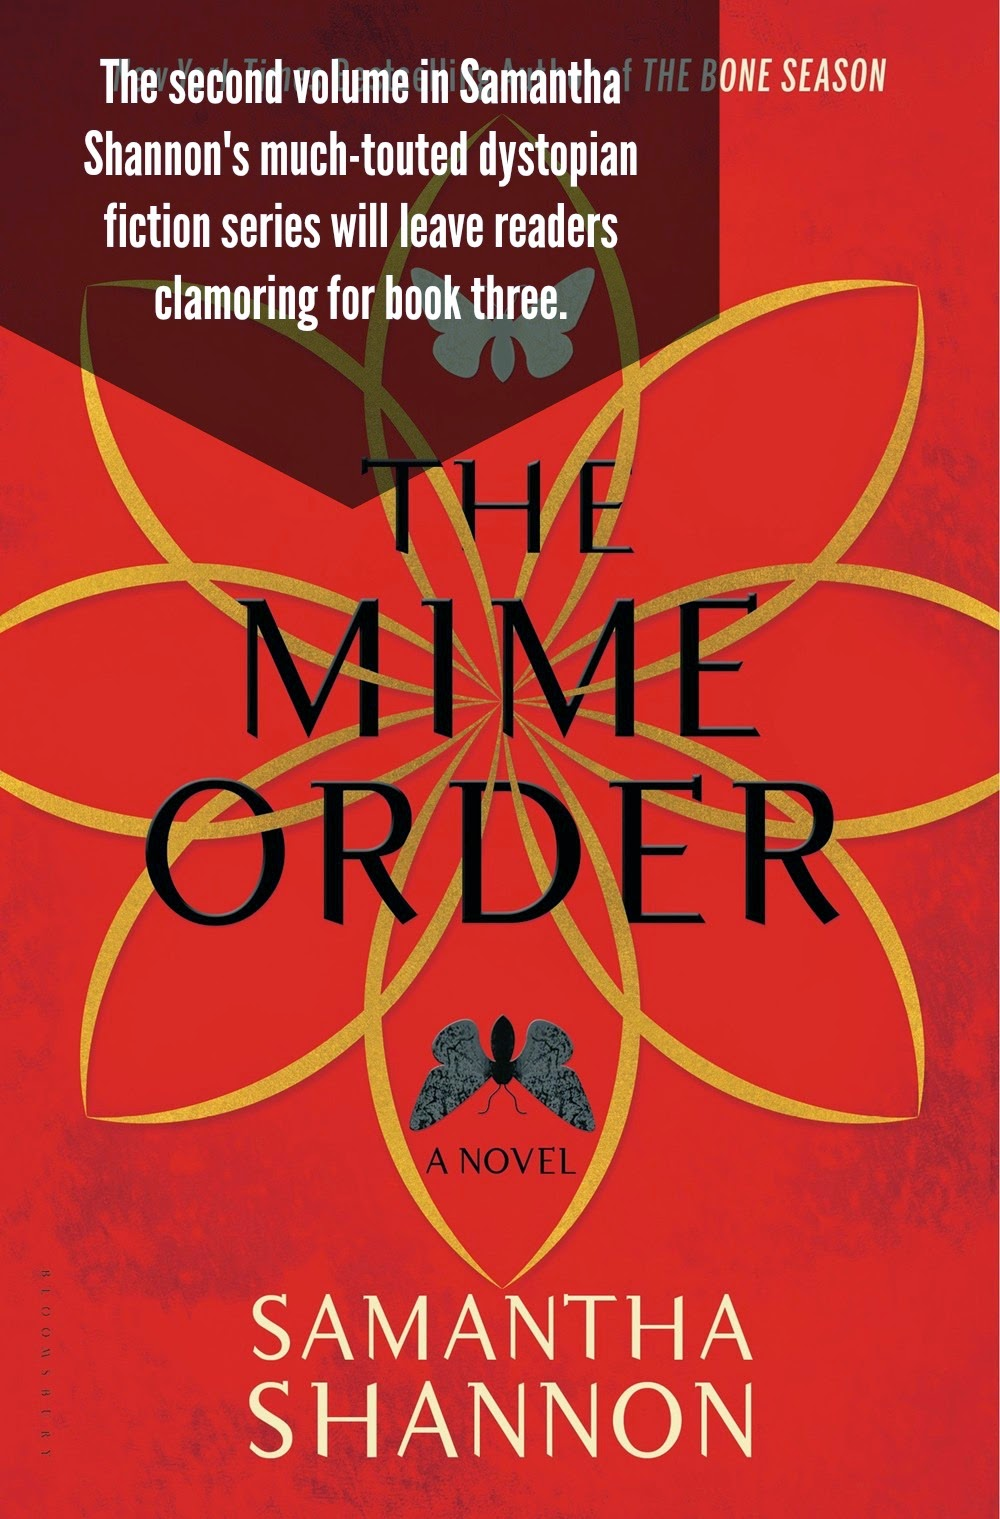 samantha shannon, the mime order, the bone season, the bone season sequel